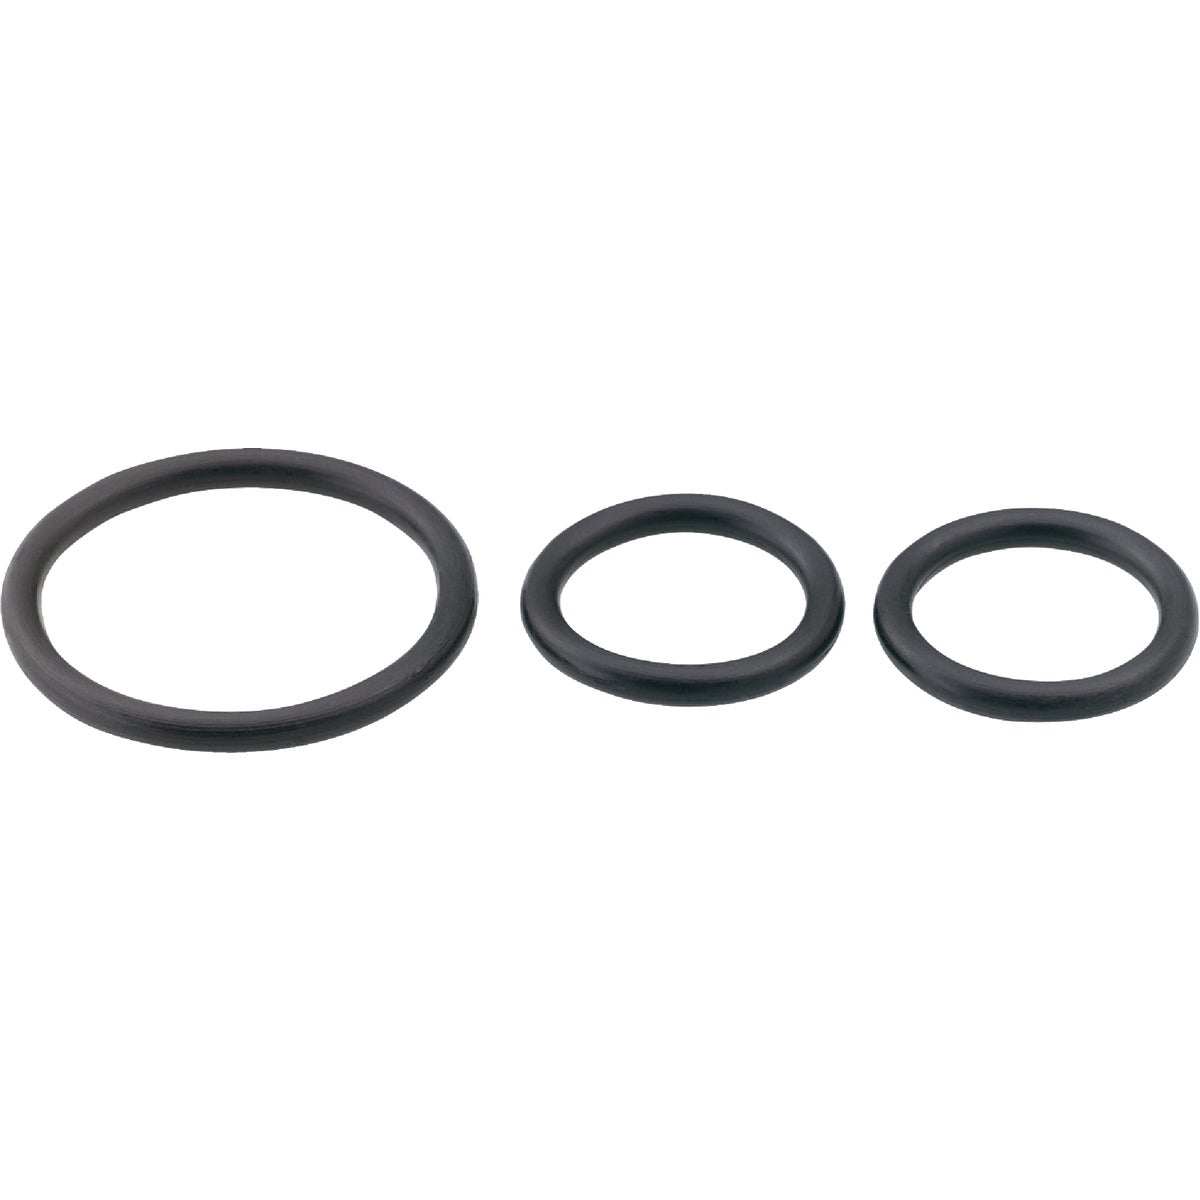 MOEN SPOUT O-RING KIT - 96778 by Moen Inc